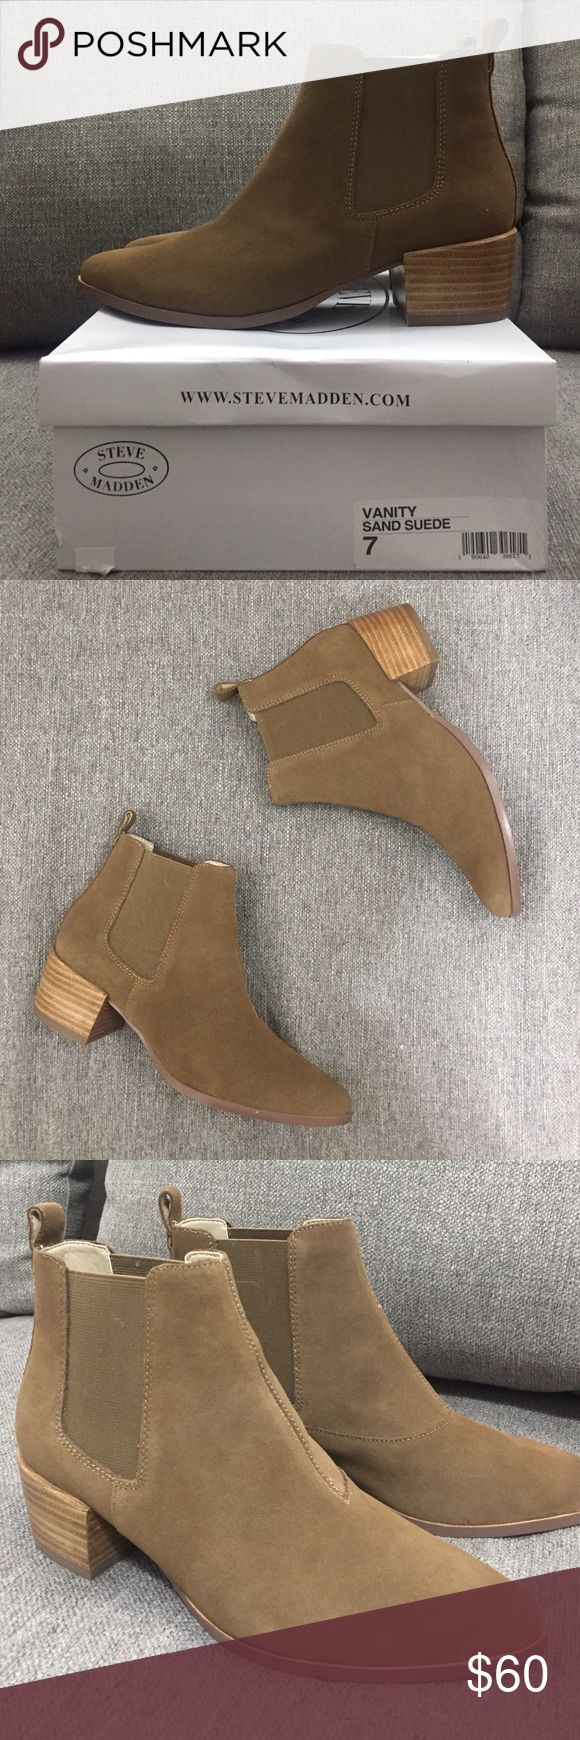 BRAND NEW Steve Madden Vanity Chelsea Boot Steve Madden Chelsea style boot in sand Suede. BRAND NEW IN BOX Steve Madden Shoes Ankle Boots & Booties